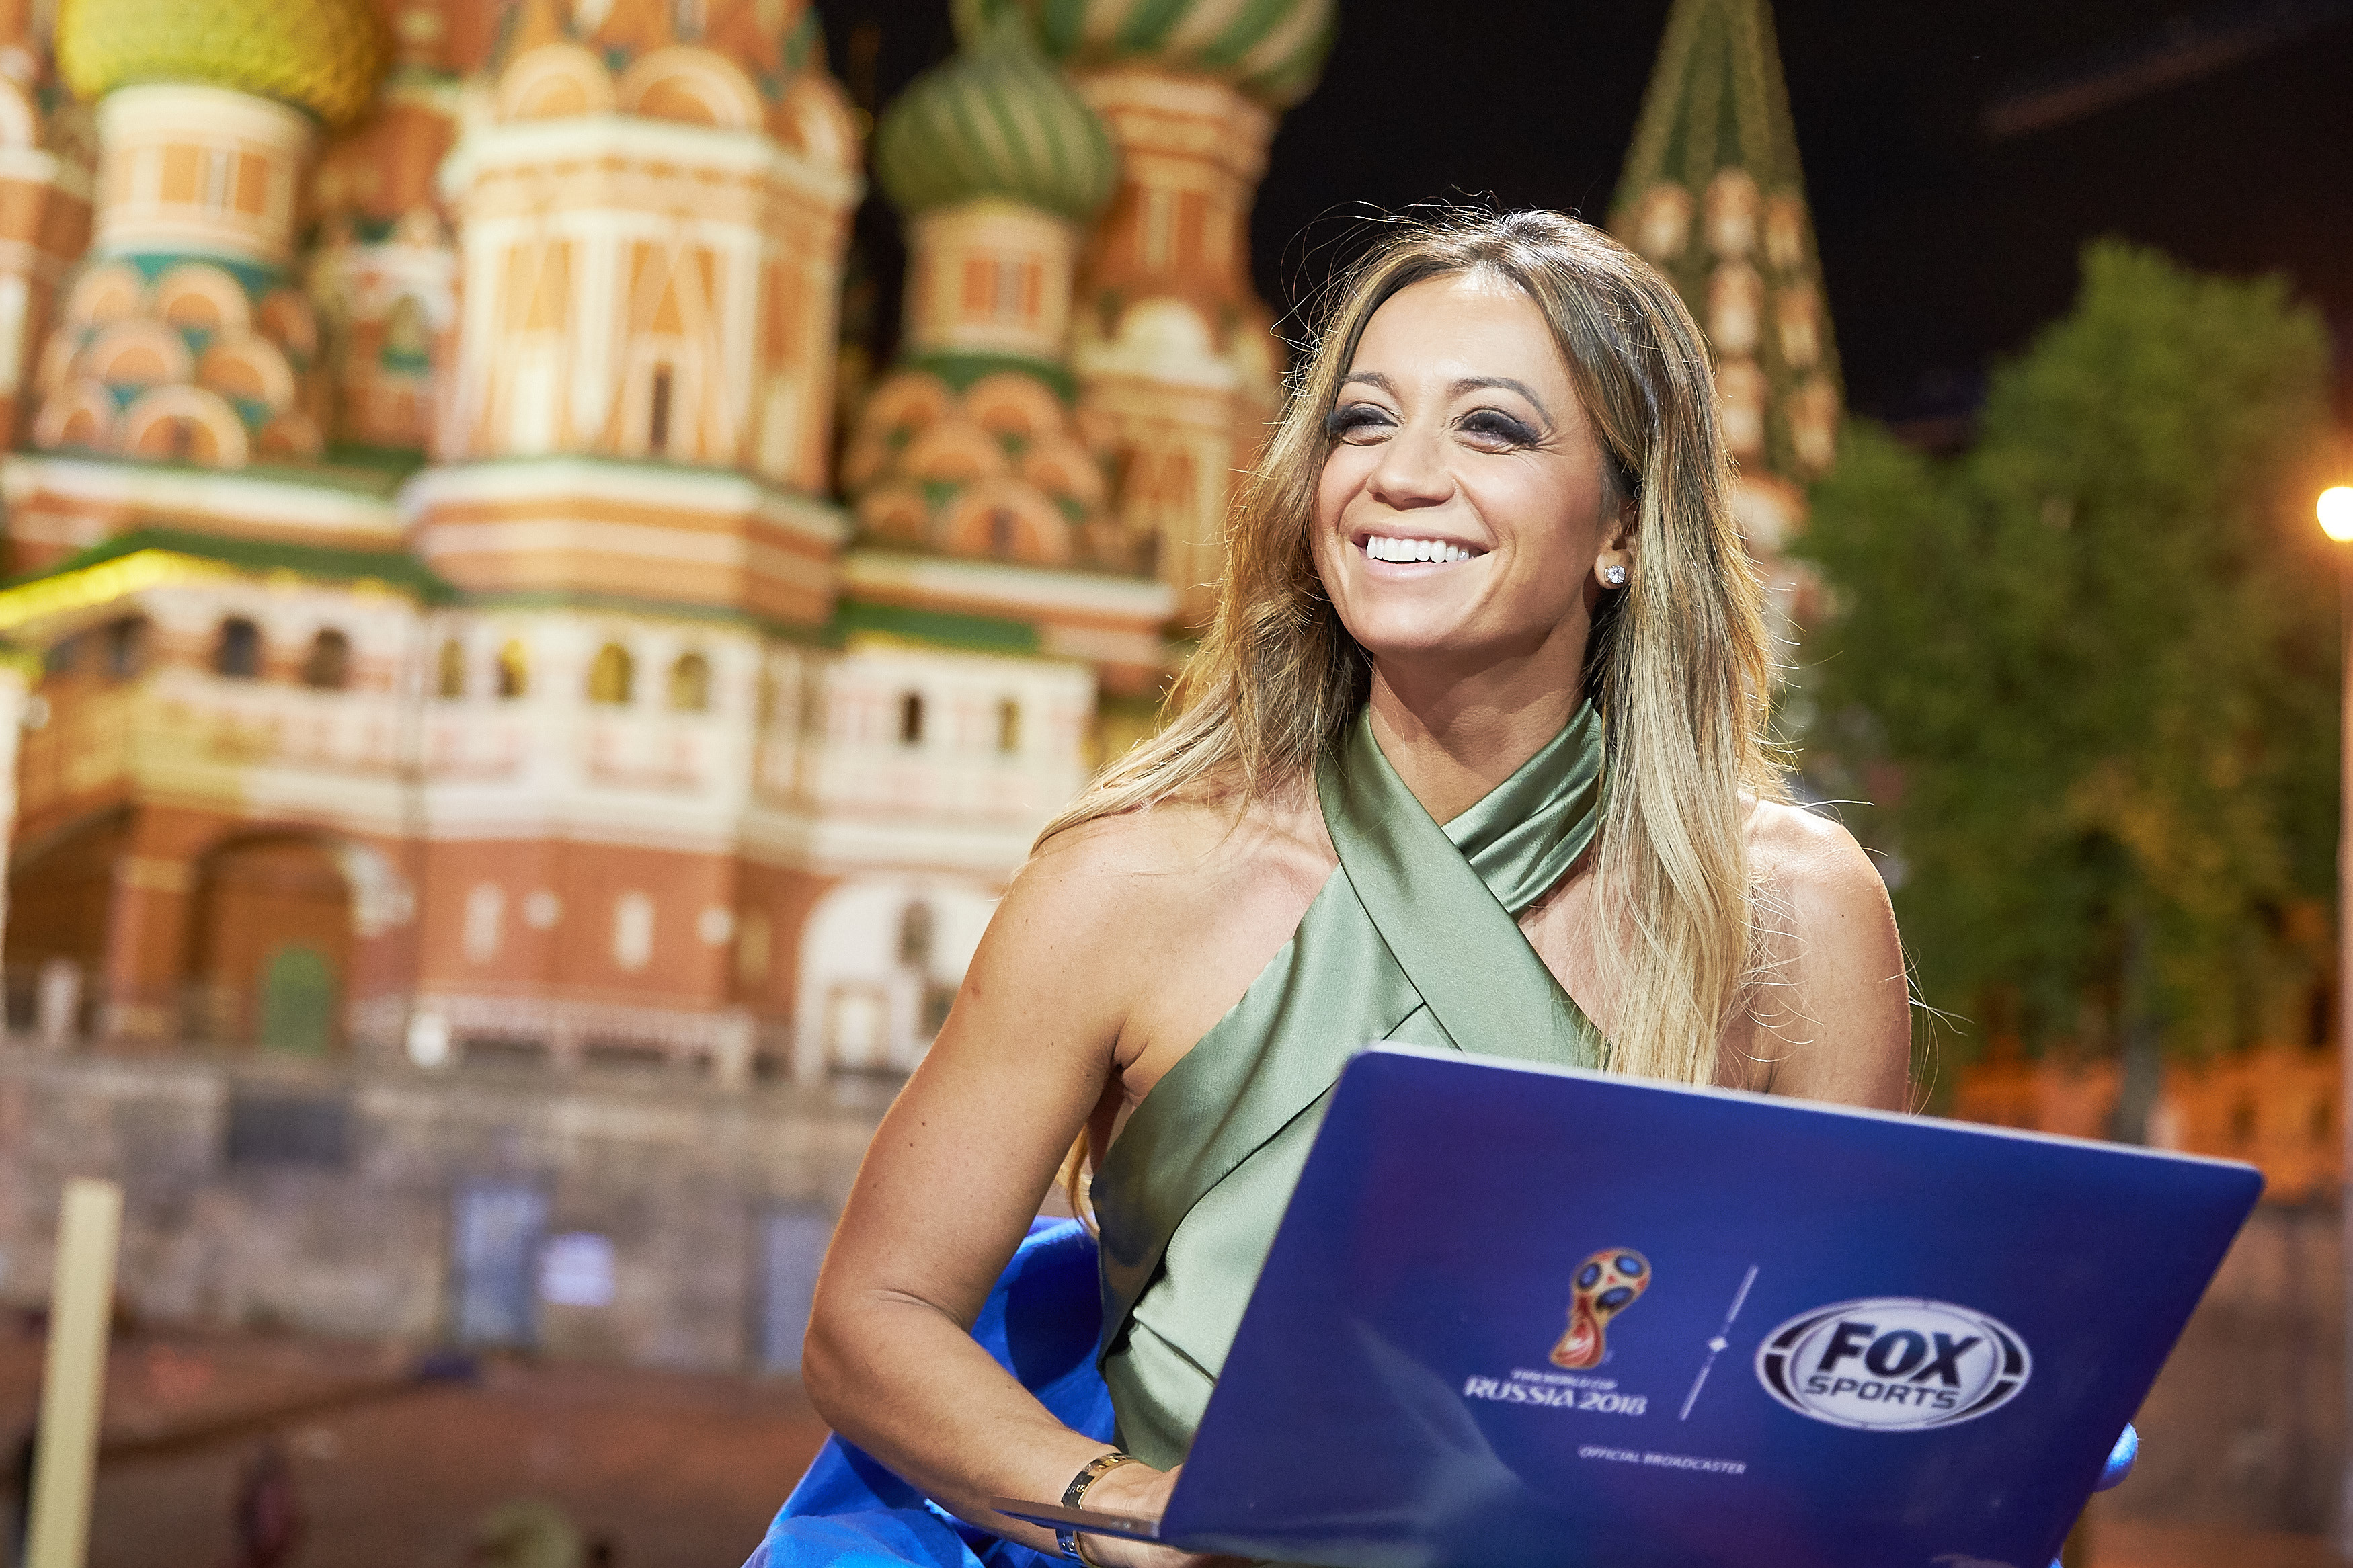 Turner Sports signed Kate Abdo, a host of Fox´s World Cup studio shows, to host its Champions League coverage. Abdo will split time between the two networks.